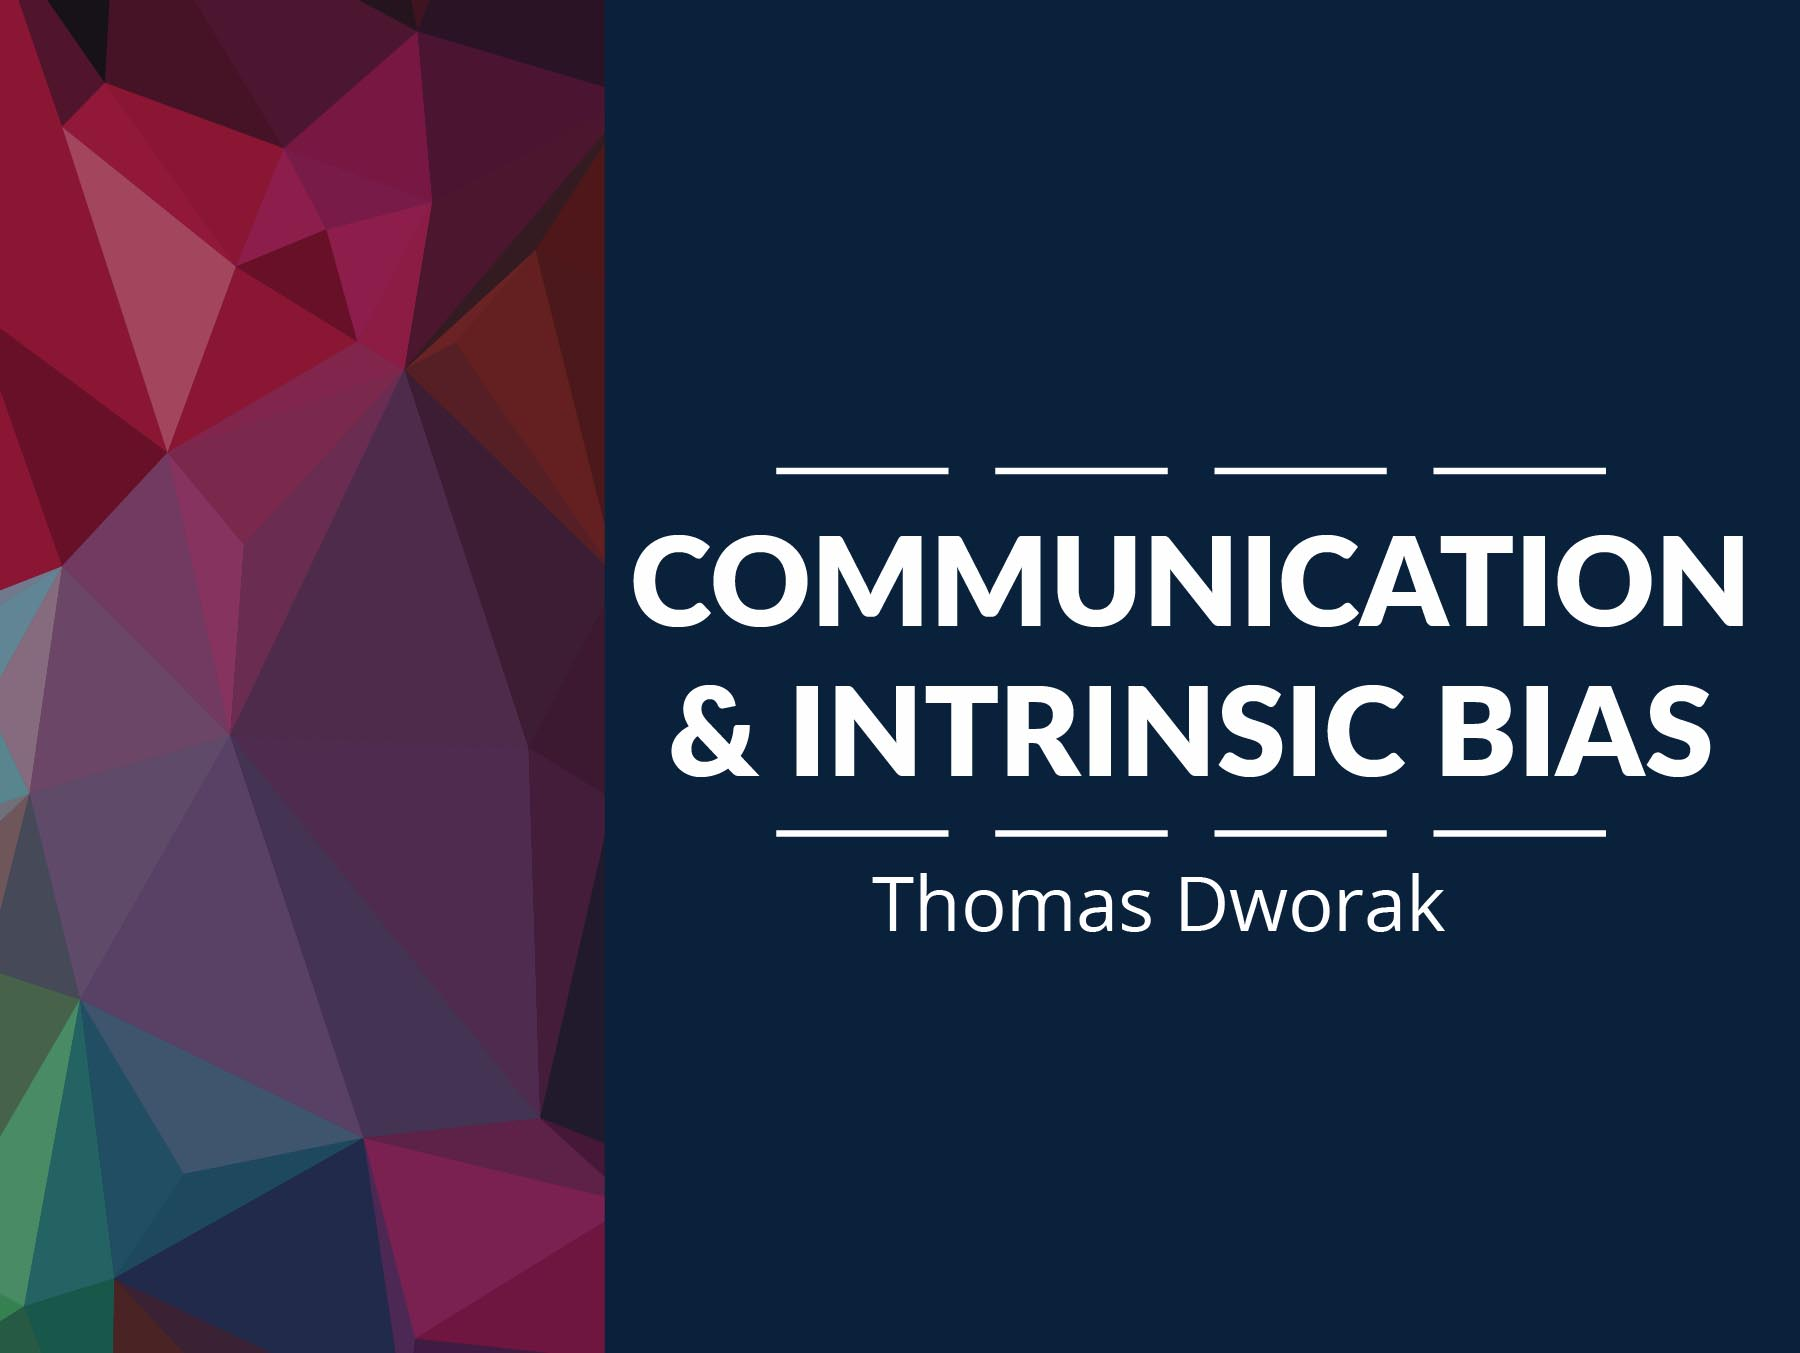 Communication and Intrinsic Bias